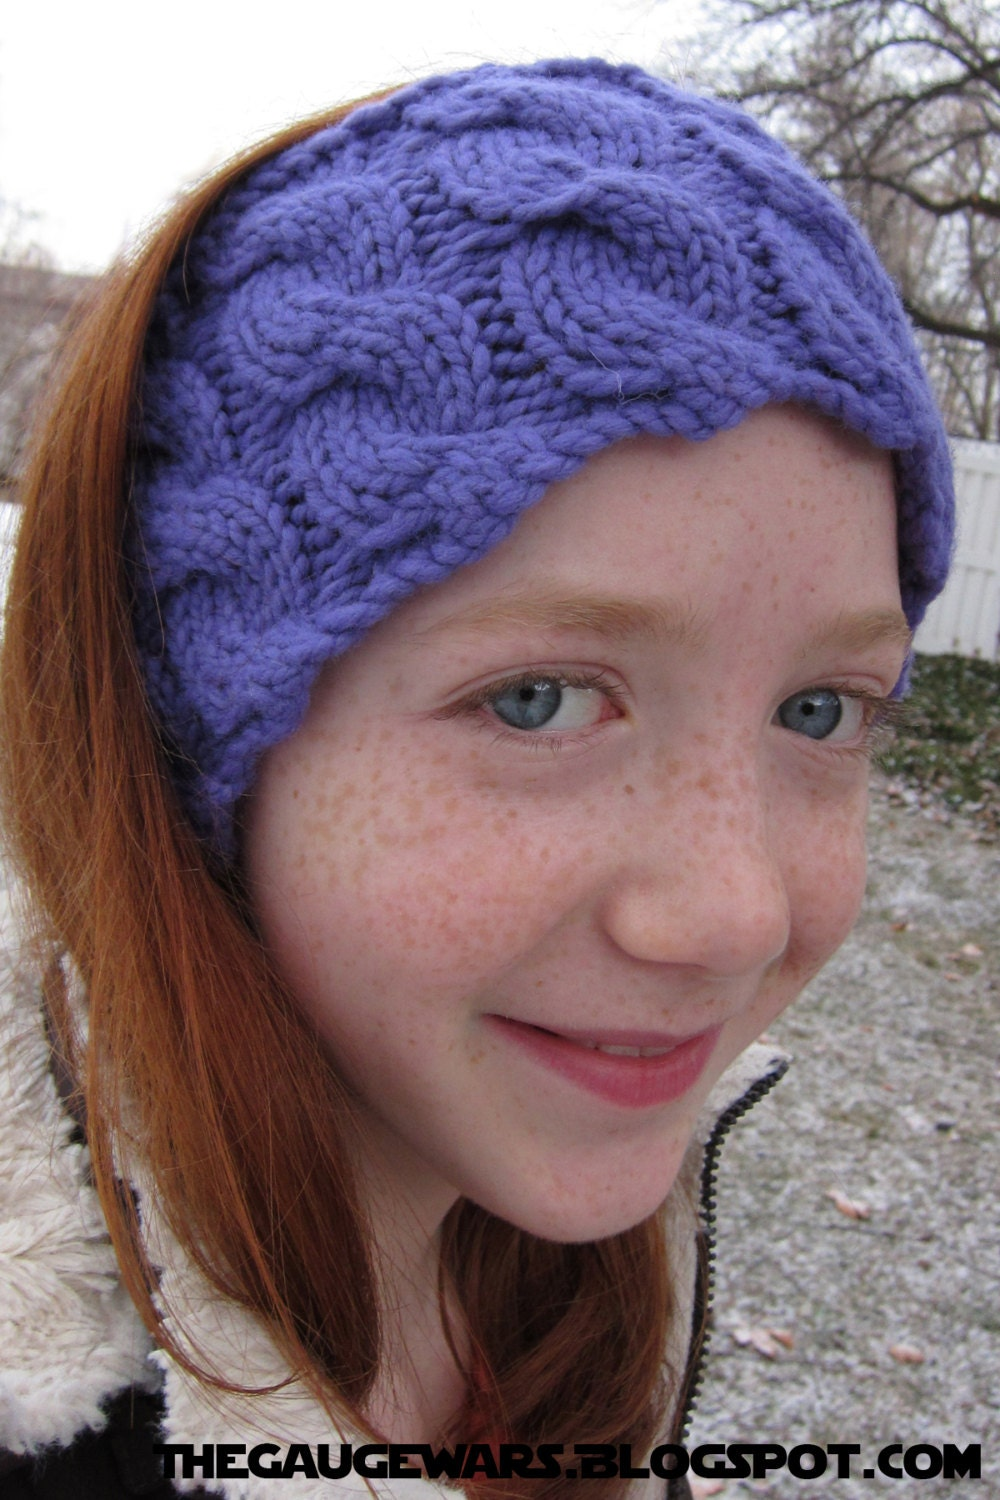 Knitting Pattern Ribbed Headband : Running Headband Pattern PDF Knitted Ribbed Cable by dahle ...